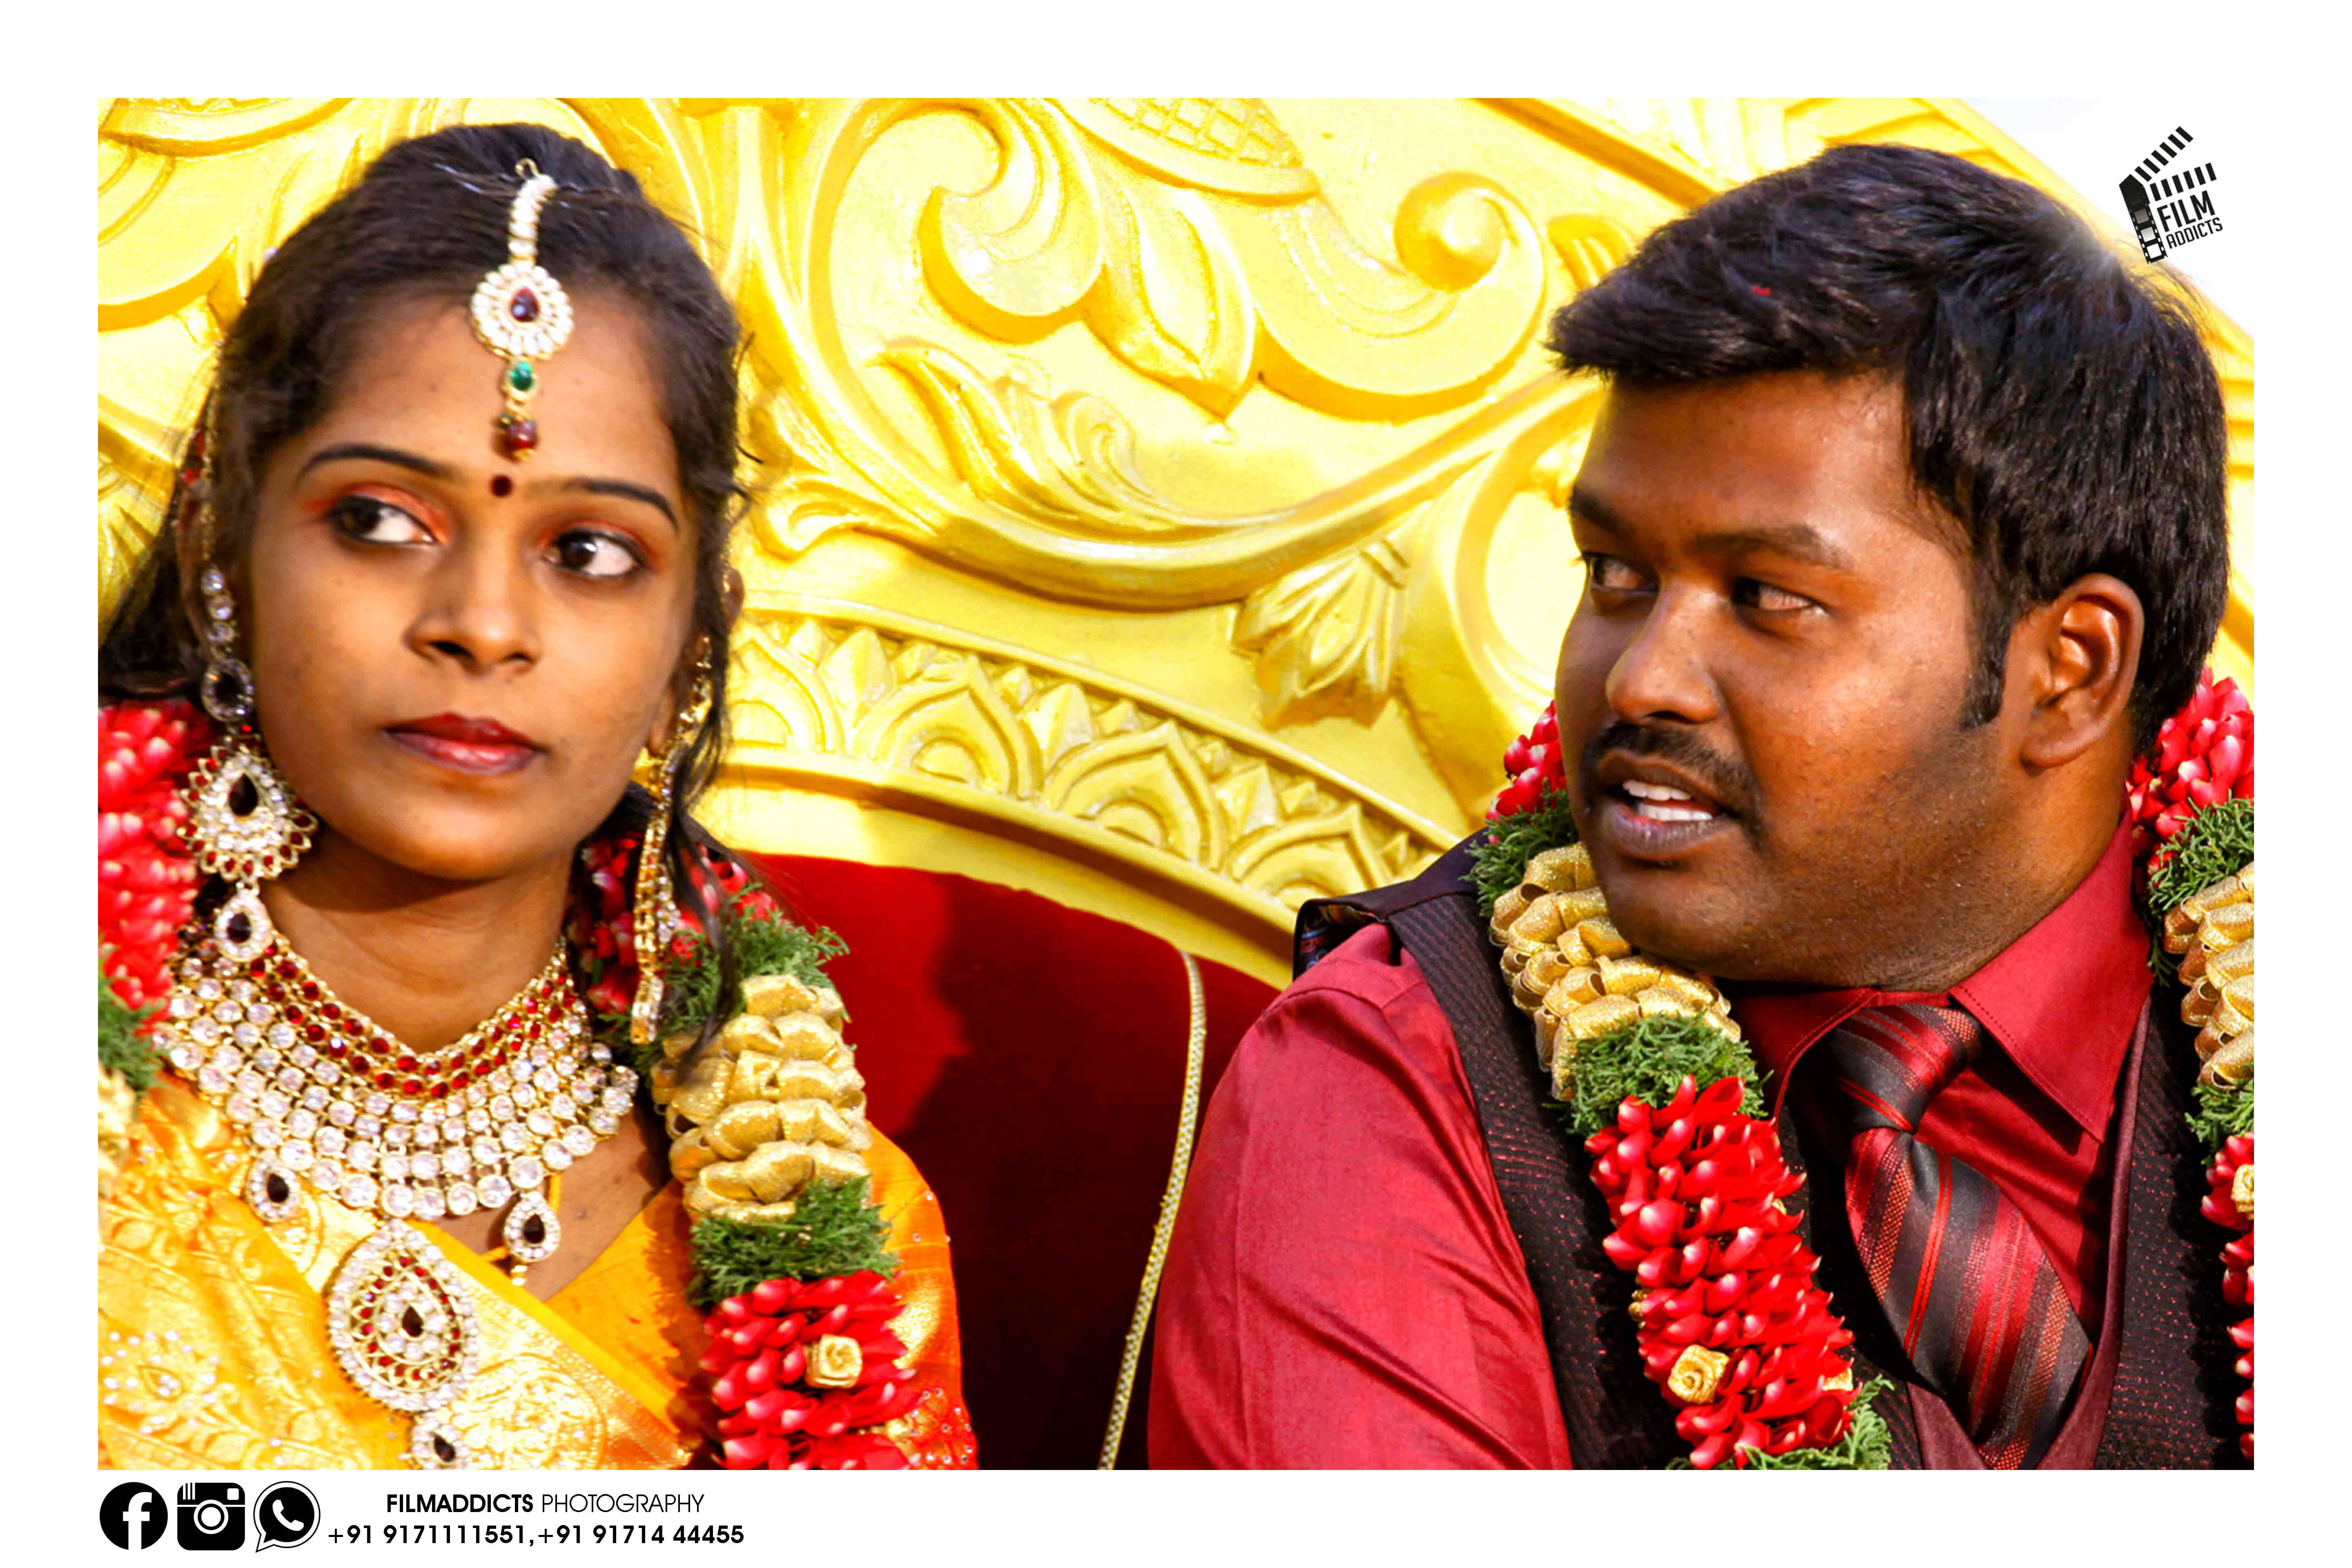 Best-Candid-Photo-in-madurai, best-candid-Photo-in-madurai,best-candid-Photo-in-madurai,Best Candid Wedding Photographer in Madurai,Best Candid Wedding Photographer in Madurai,creative-wedding-Photo-in-madurai,creative-candid-Photo-in-madurai